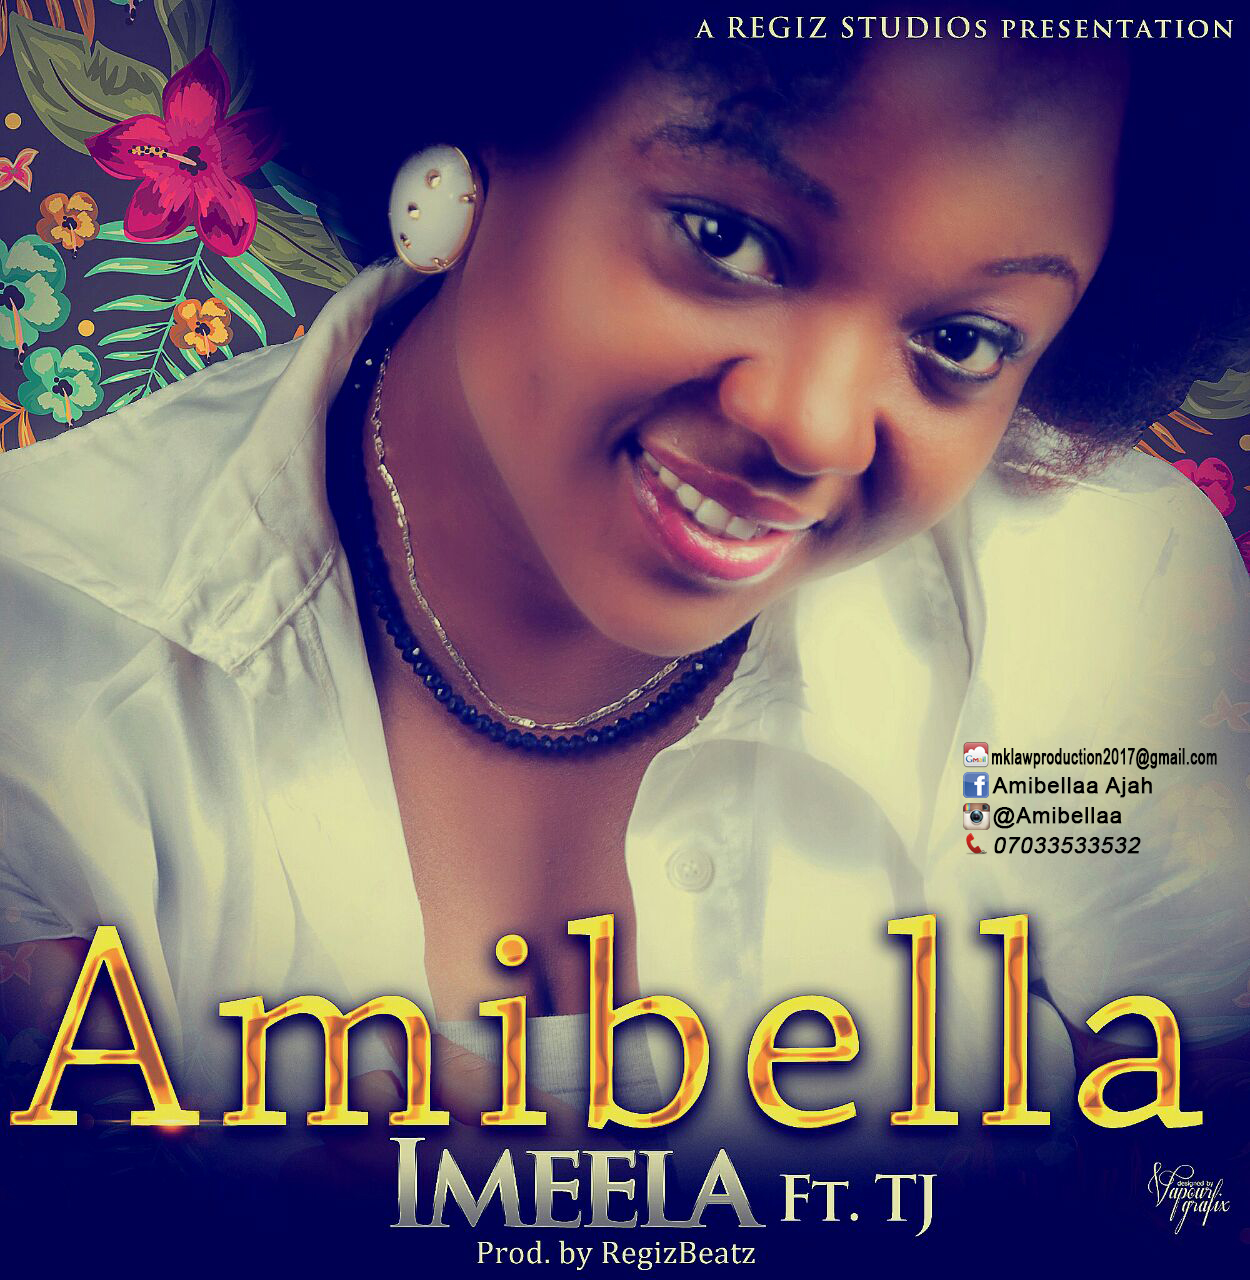 Video: Imela Ft. TJ ~ Amibella [@Amibellaa]